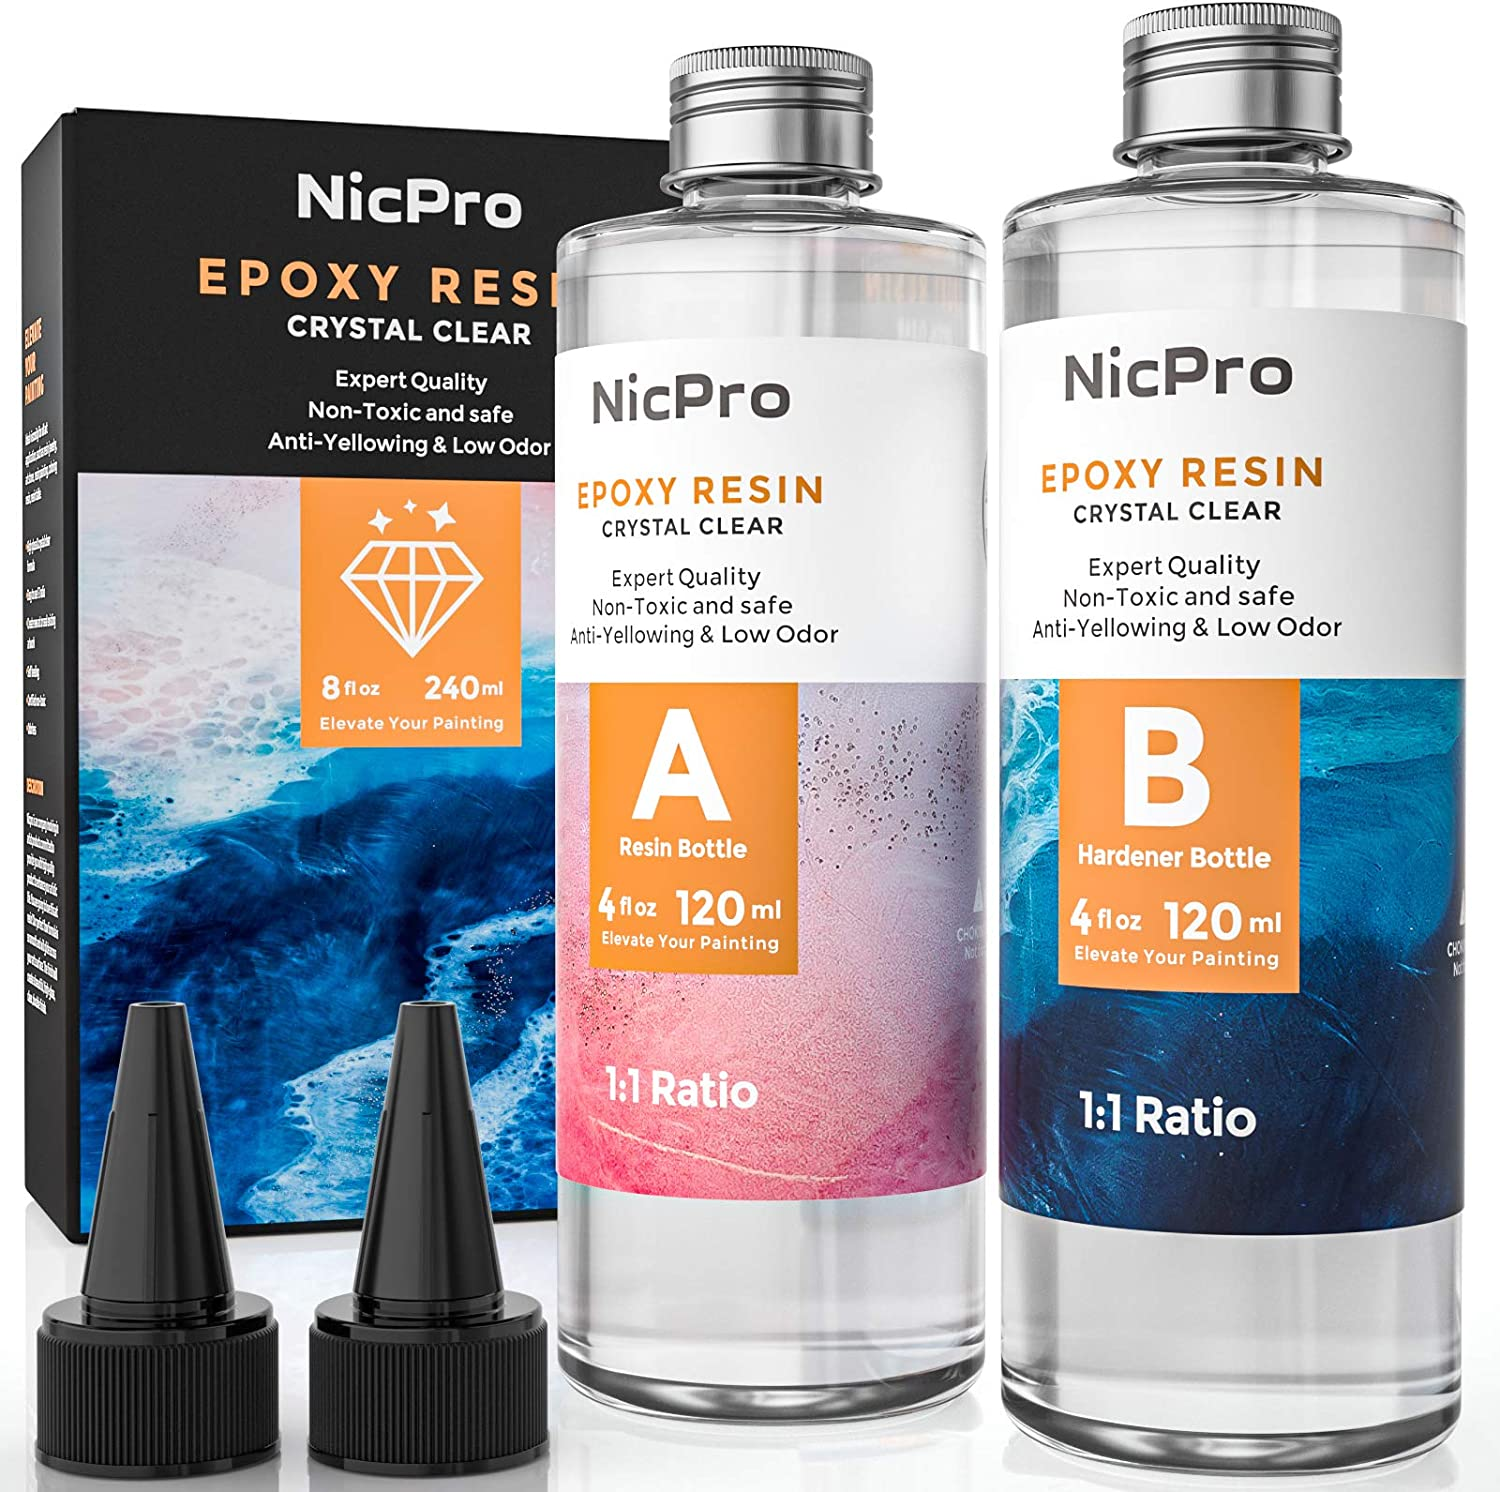 Nicpro 8 Ounce Crystal Clear Epoxy Resin Kit, Food Safe DIY Starter Art Resin for Craft, Canvas Painting, Molds Pigment Jewelry Making, Resin Coating and Casting